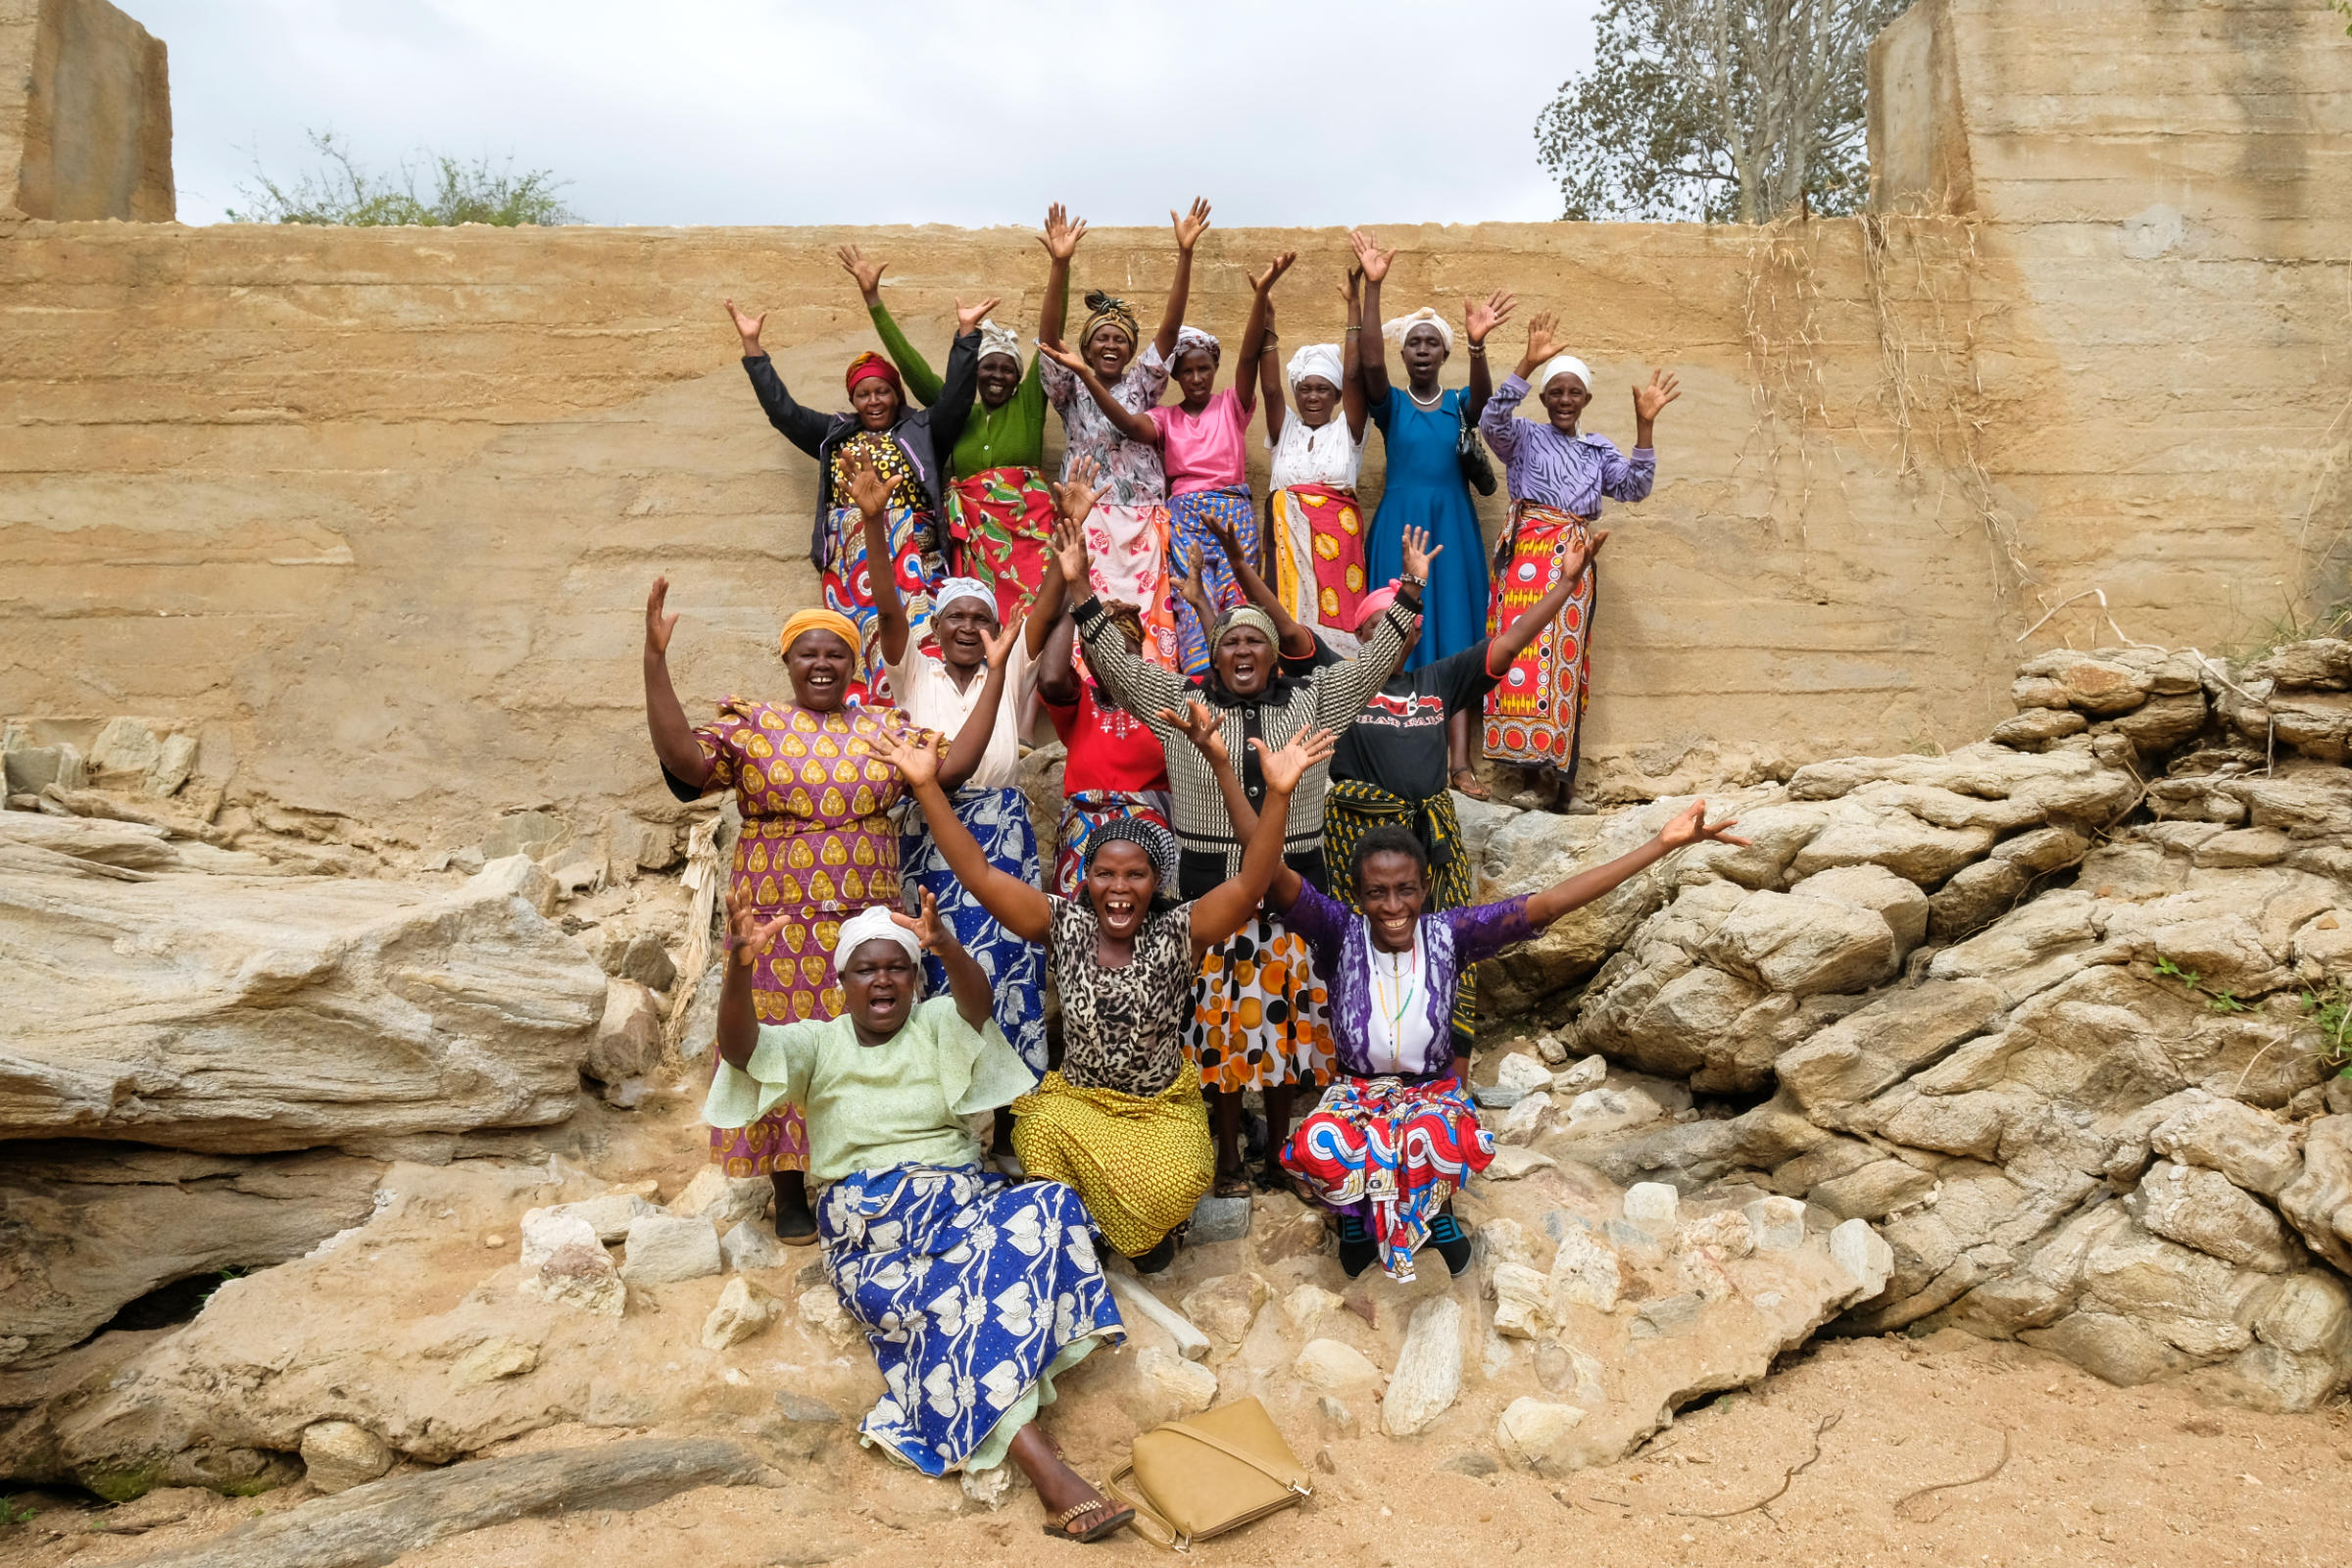 A group of women with raised hands infront of a wall